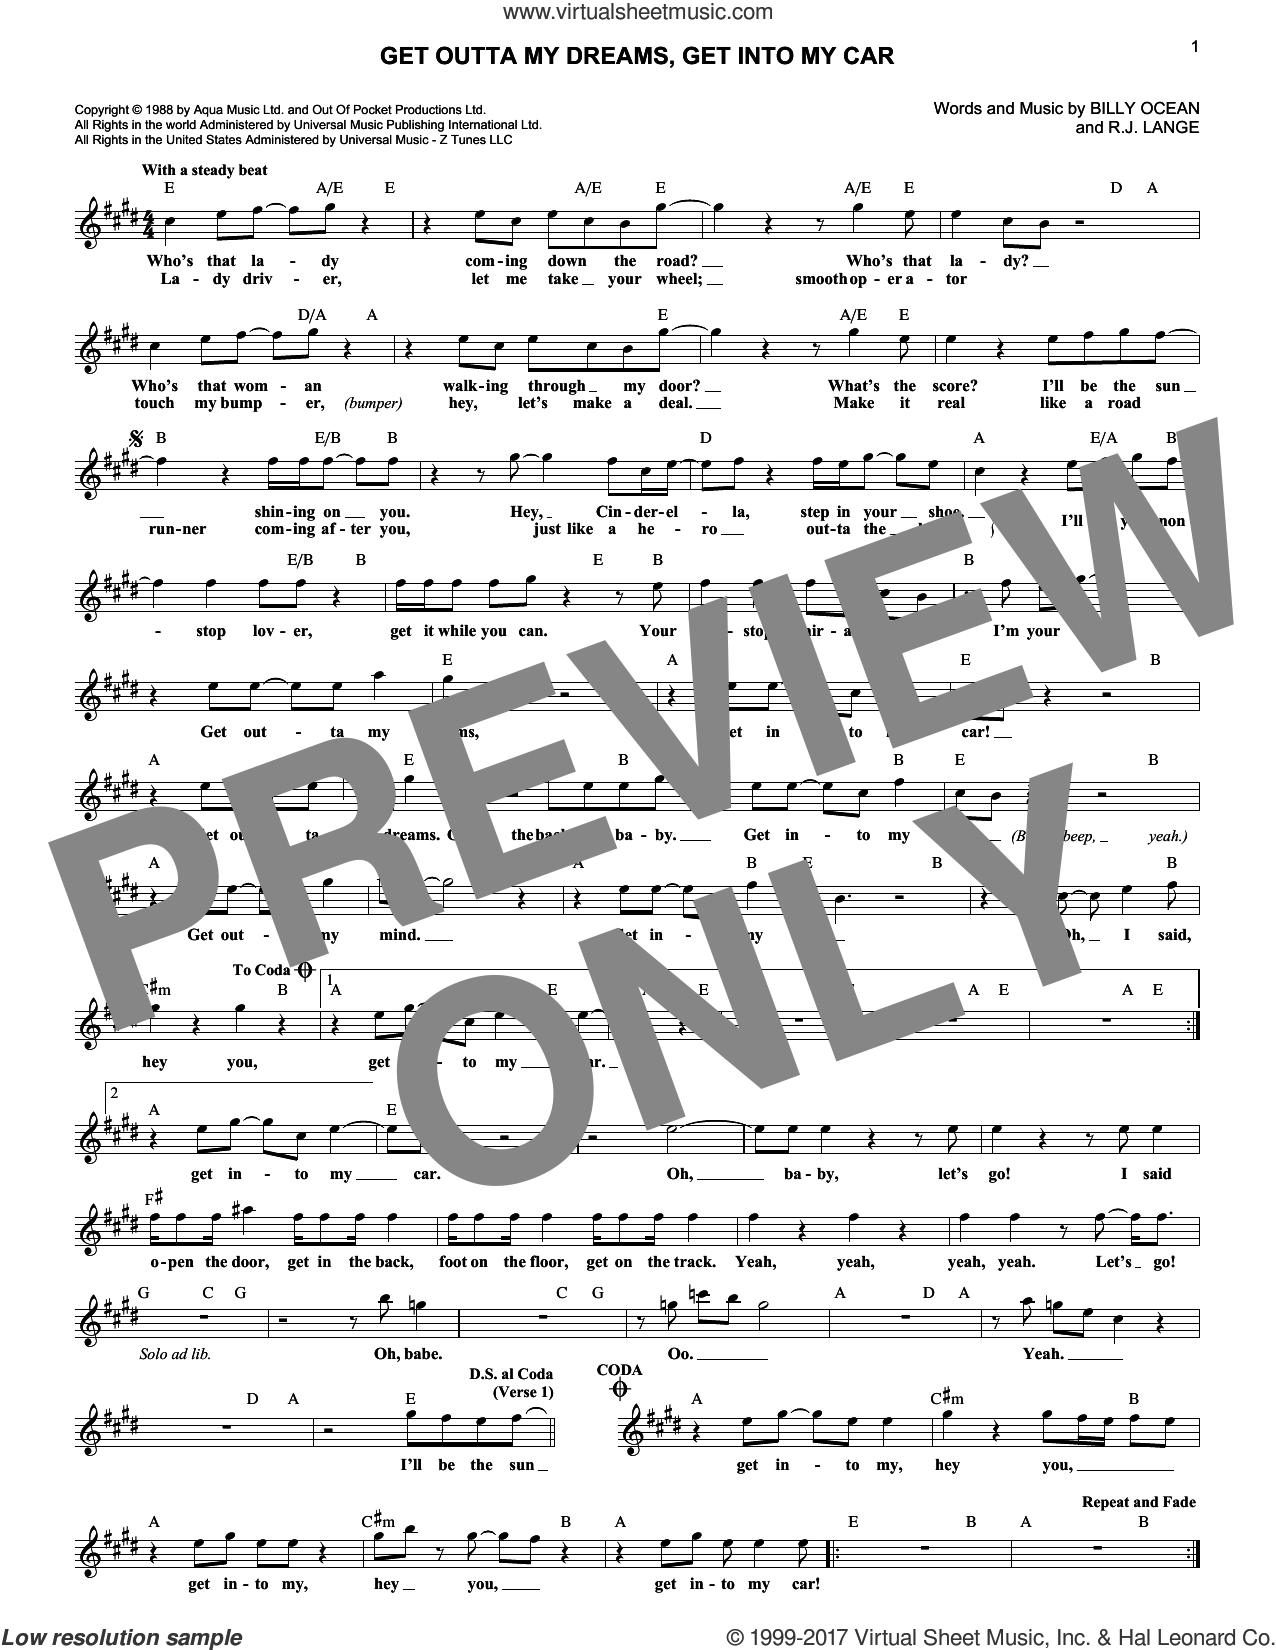 Get Outta My Dreams, Get Into My Car sheet music for voice and other instruments (fake book) by Billy Ocean and Robert John Lange, intermediate